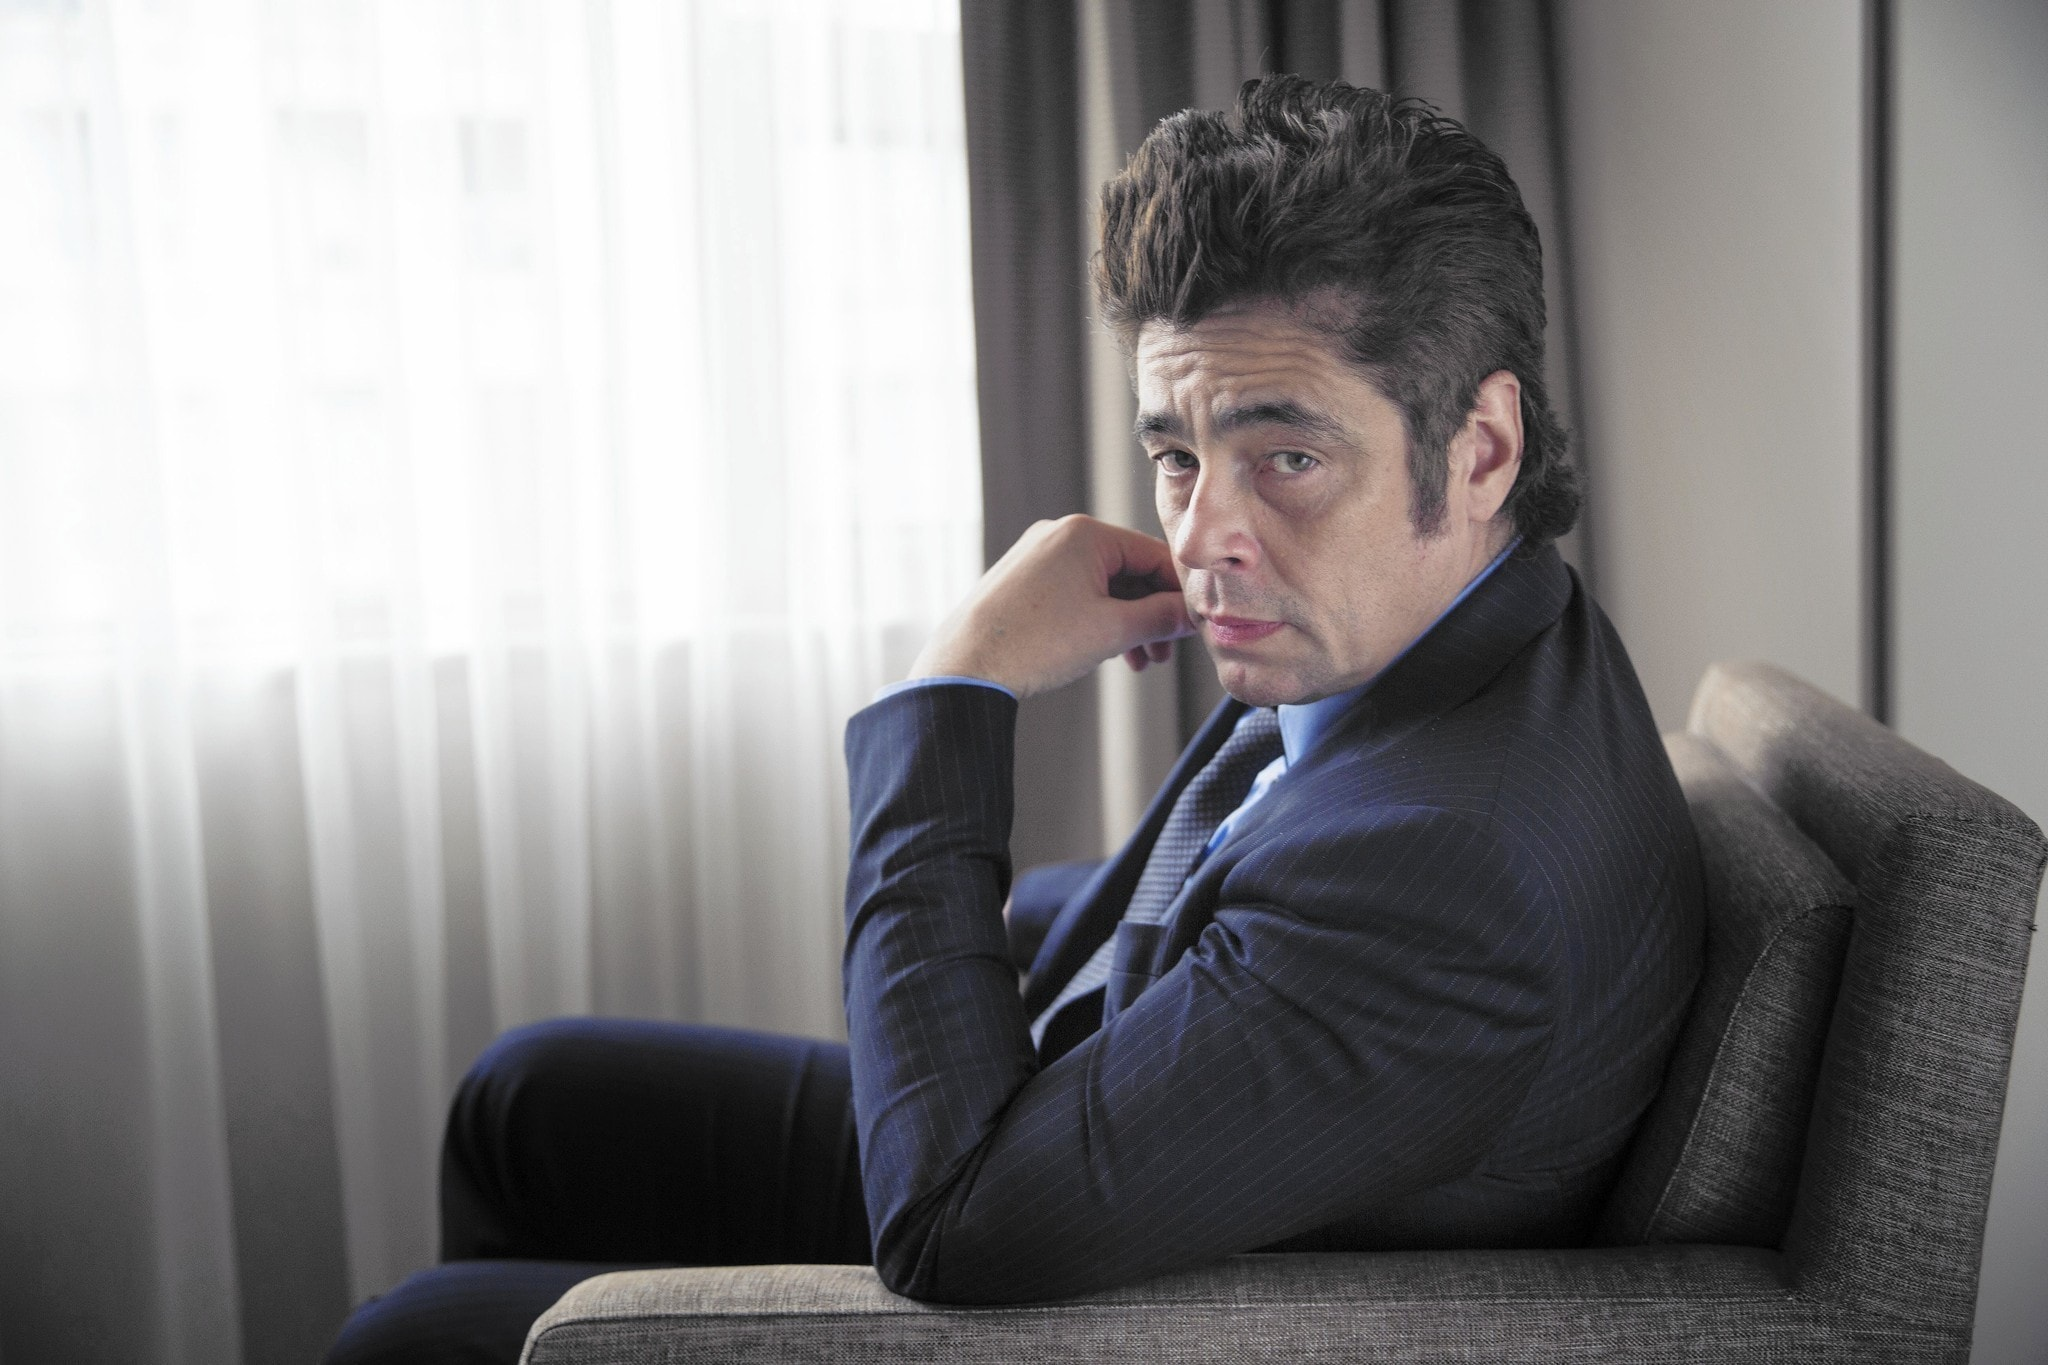 Benicio Del Toro Wallpapers hd